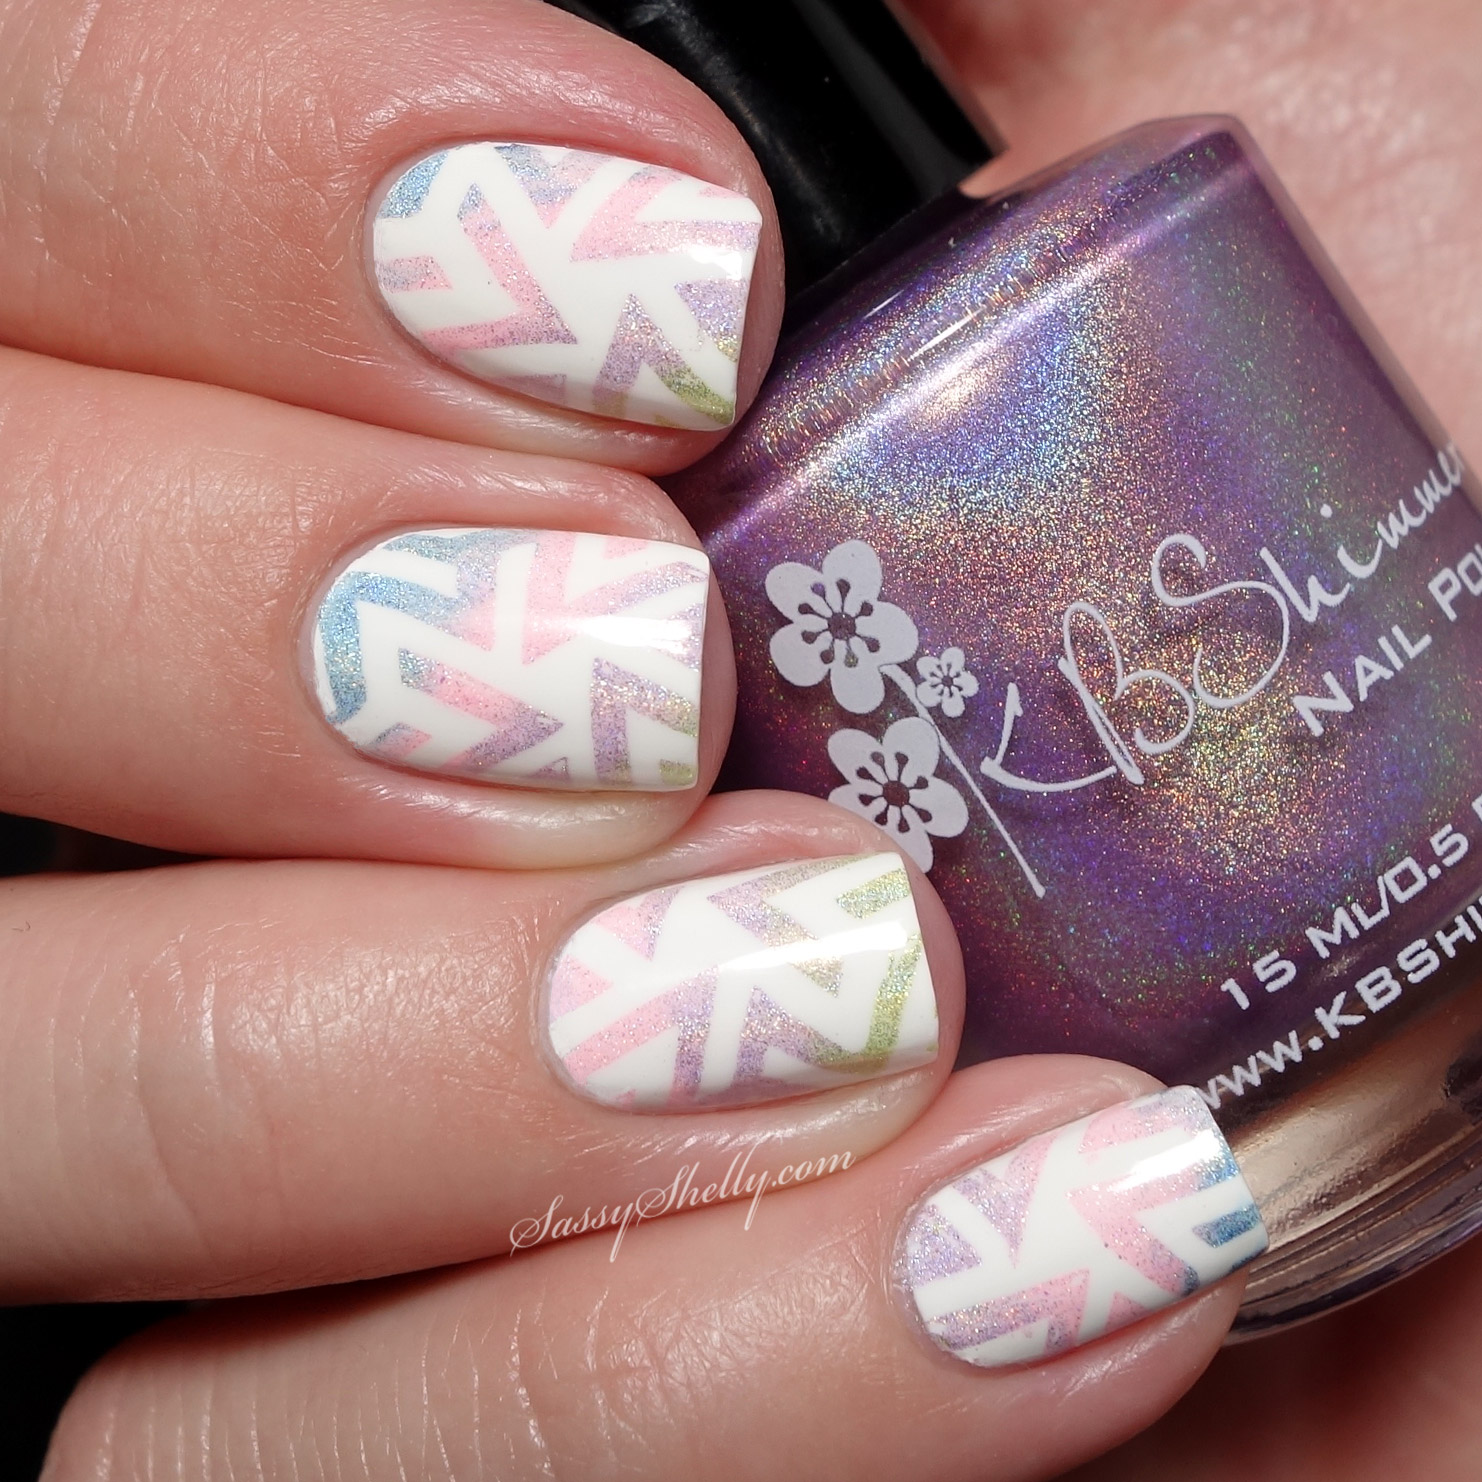 Geometric Gradient Stamping Nail Art with the KBShimmer Spring Collection  |  Sassy Shelly guest post for Kellie Gonzo